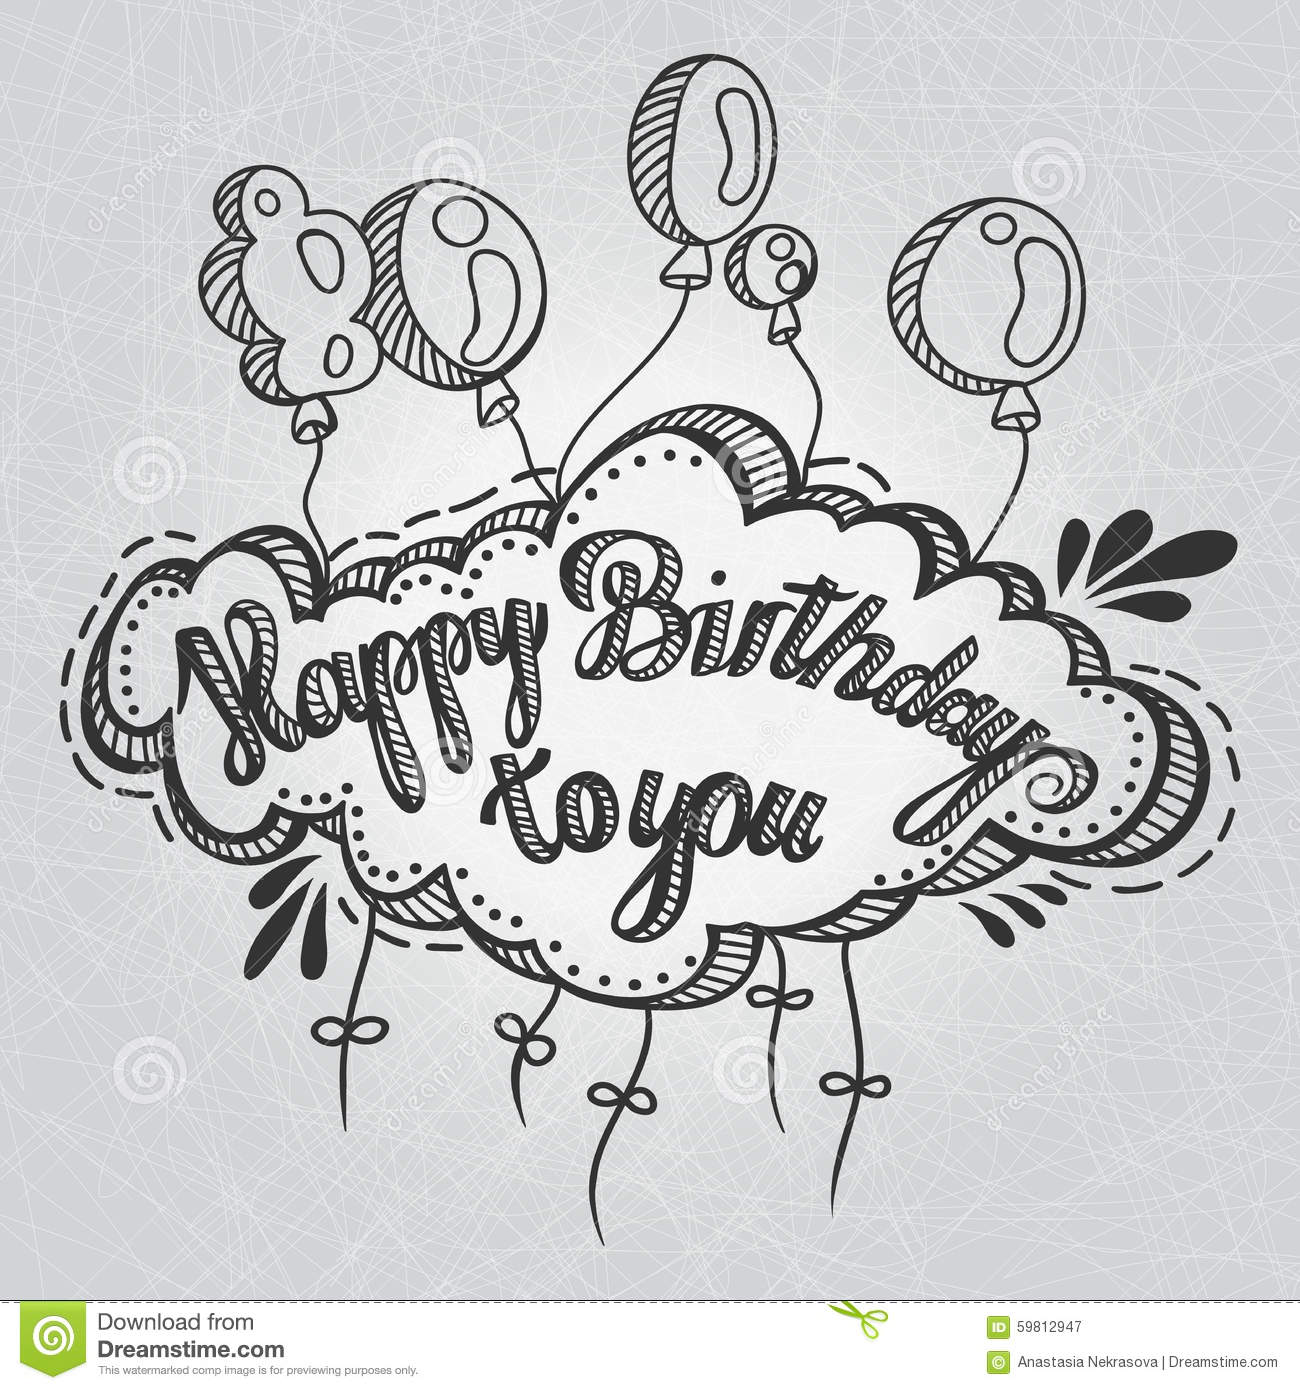 Greeting Card Happy Birthday To You Hand Drawing Inscription And Balloons Drawn Congratulations On The Holiday